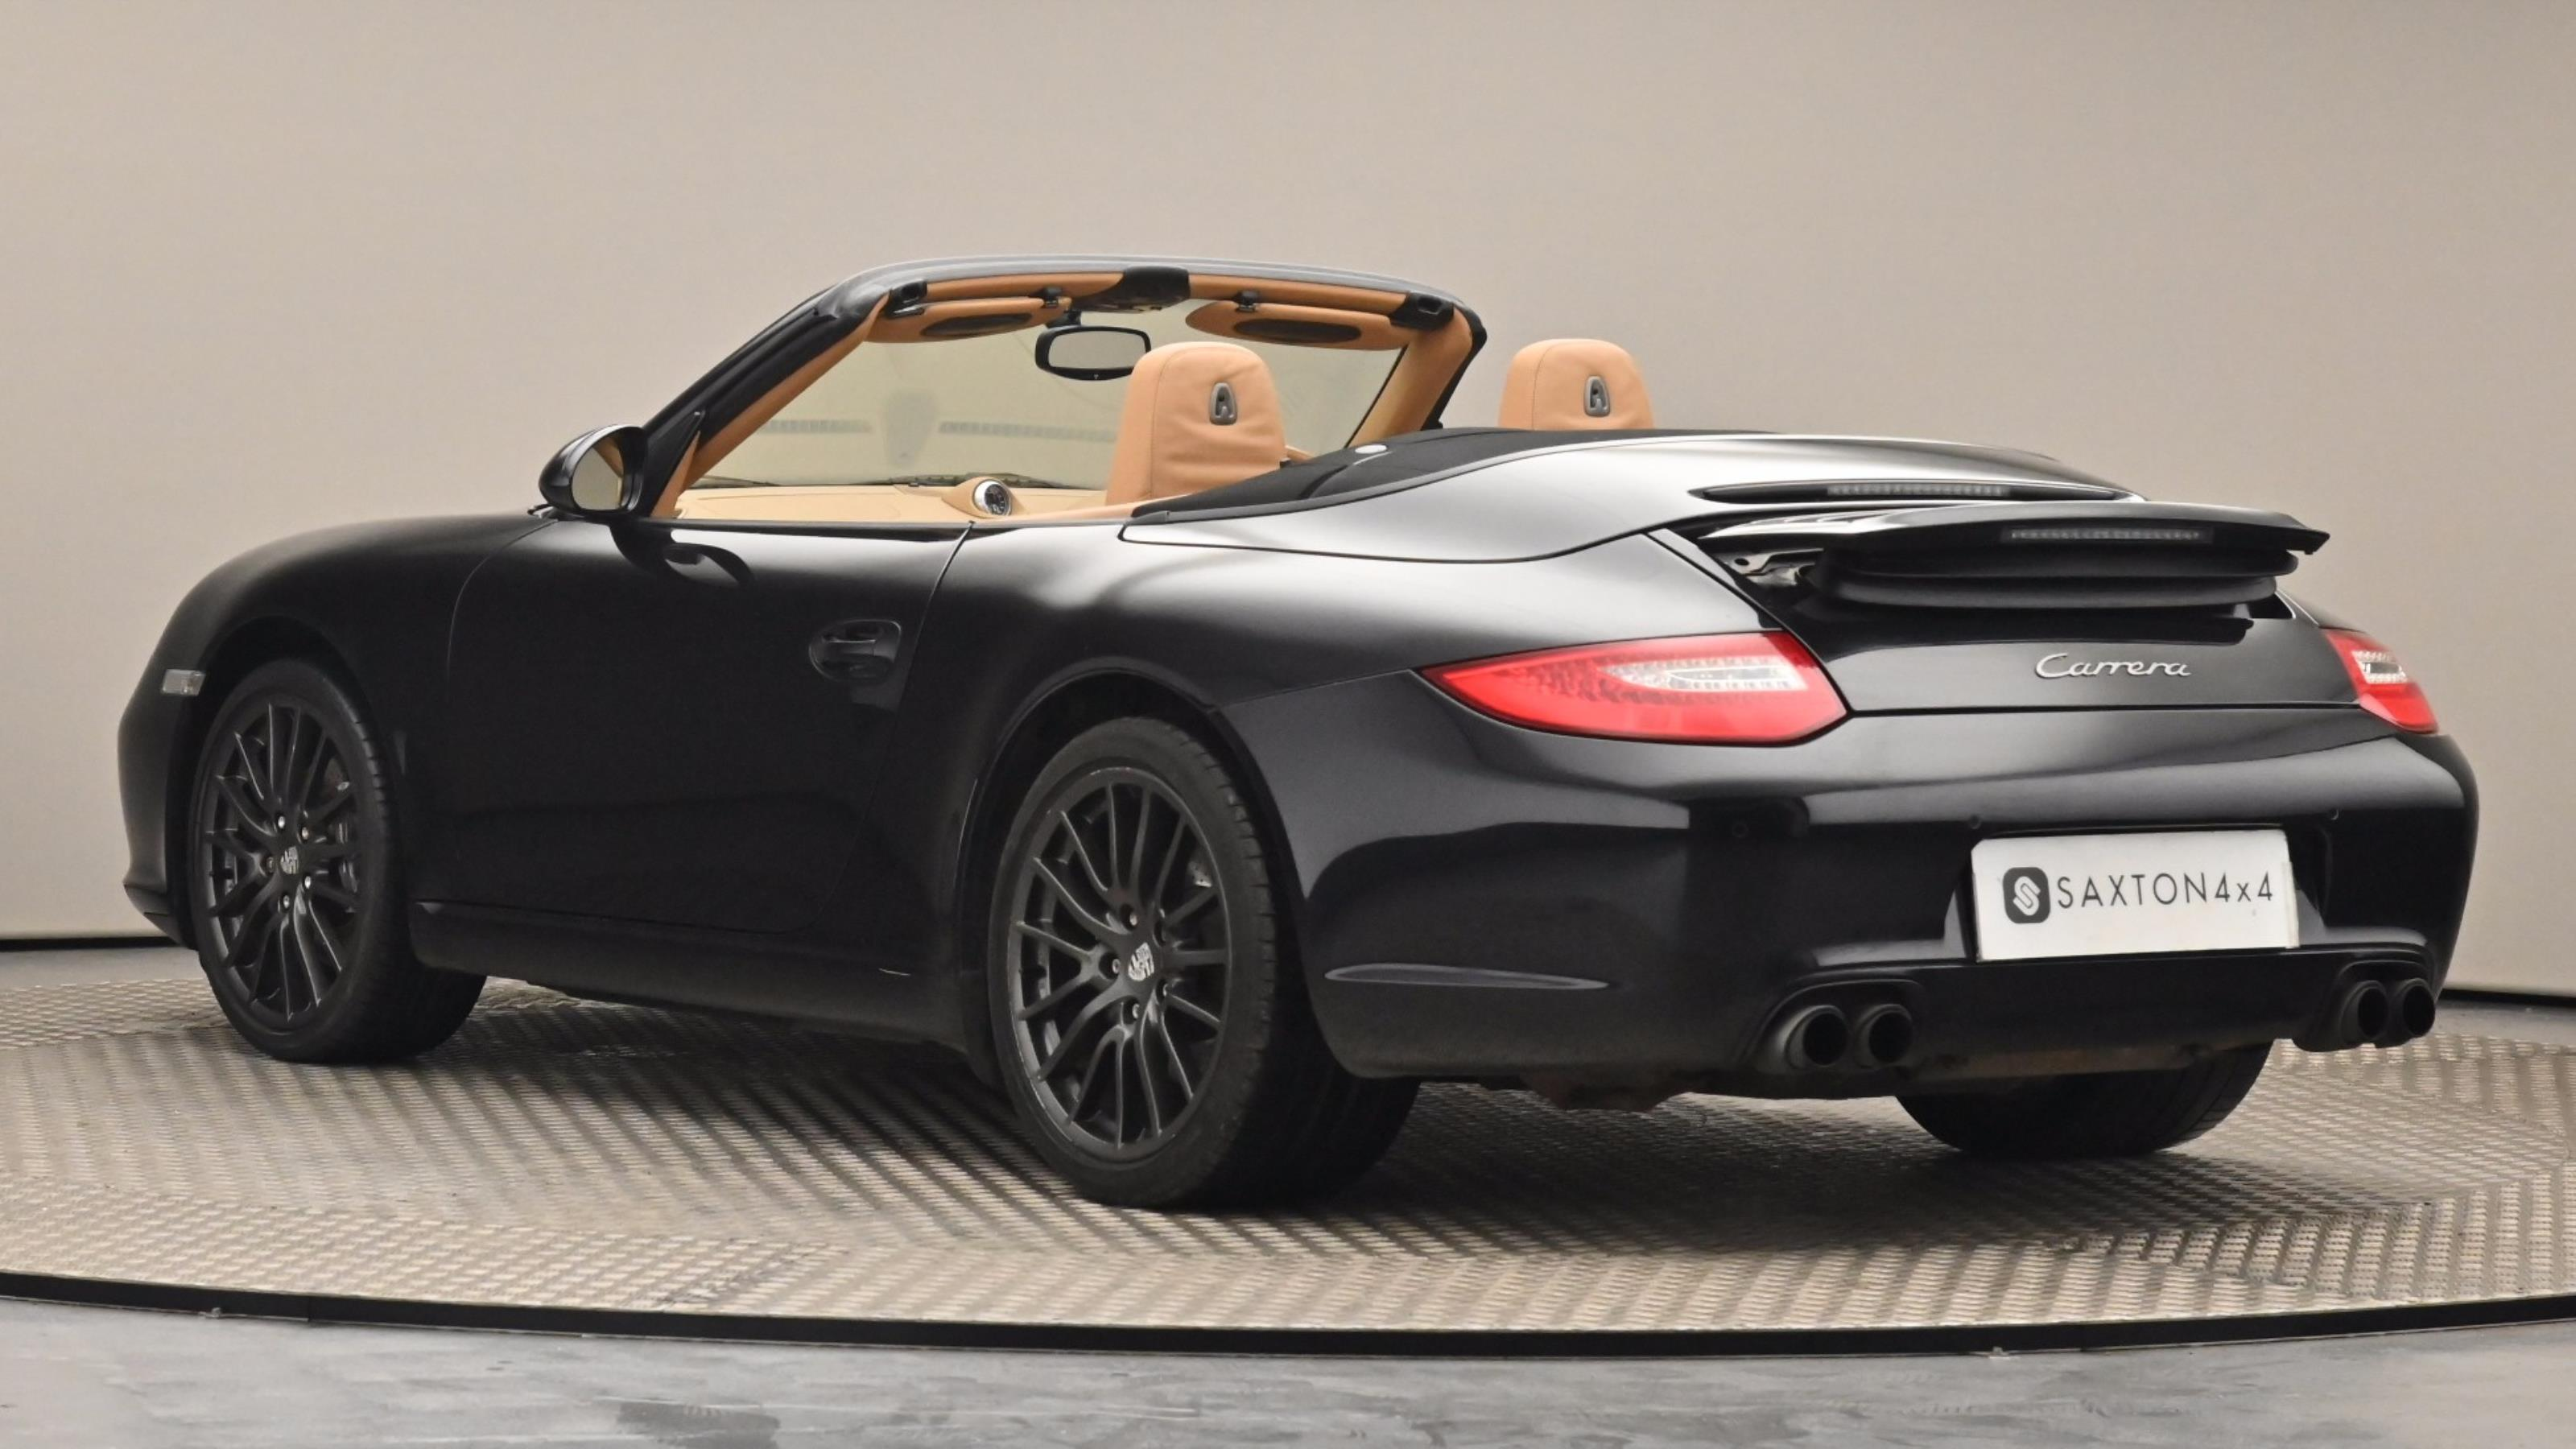 Used 10 Porsche 911 2dr PDK BLACK at Saxton4x4